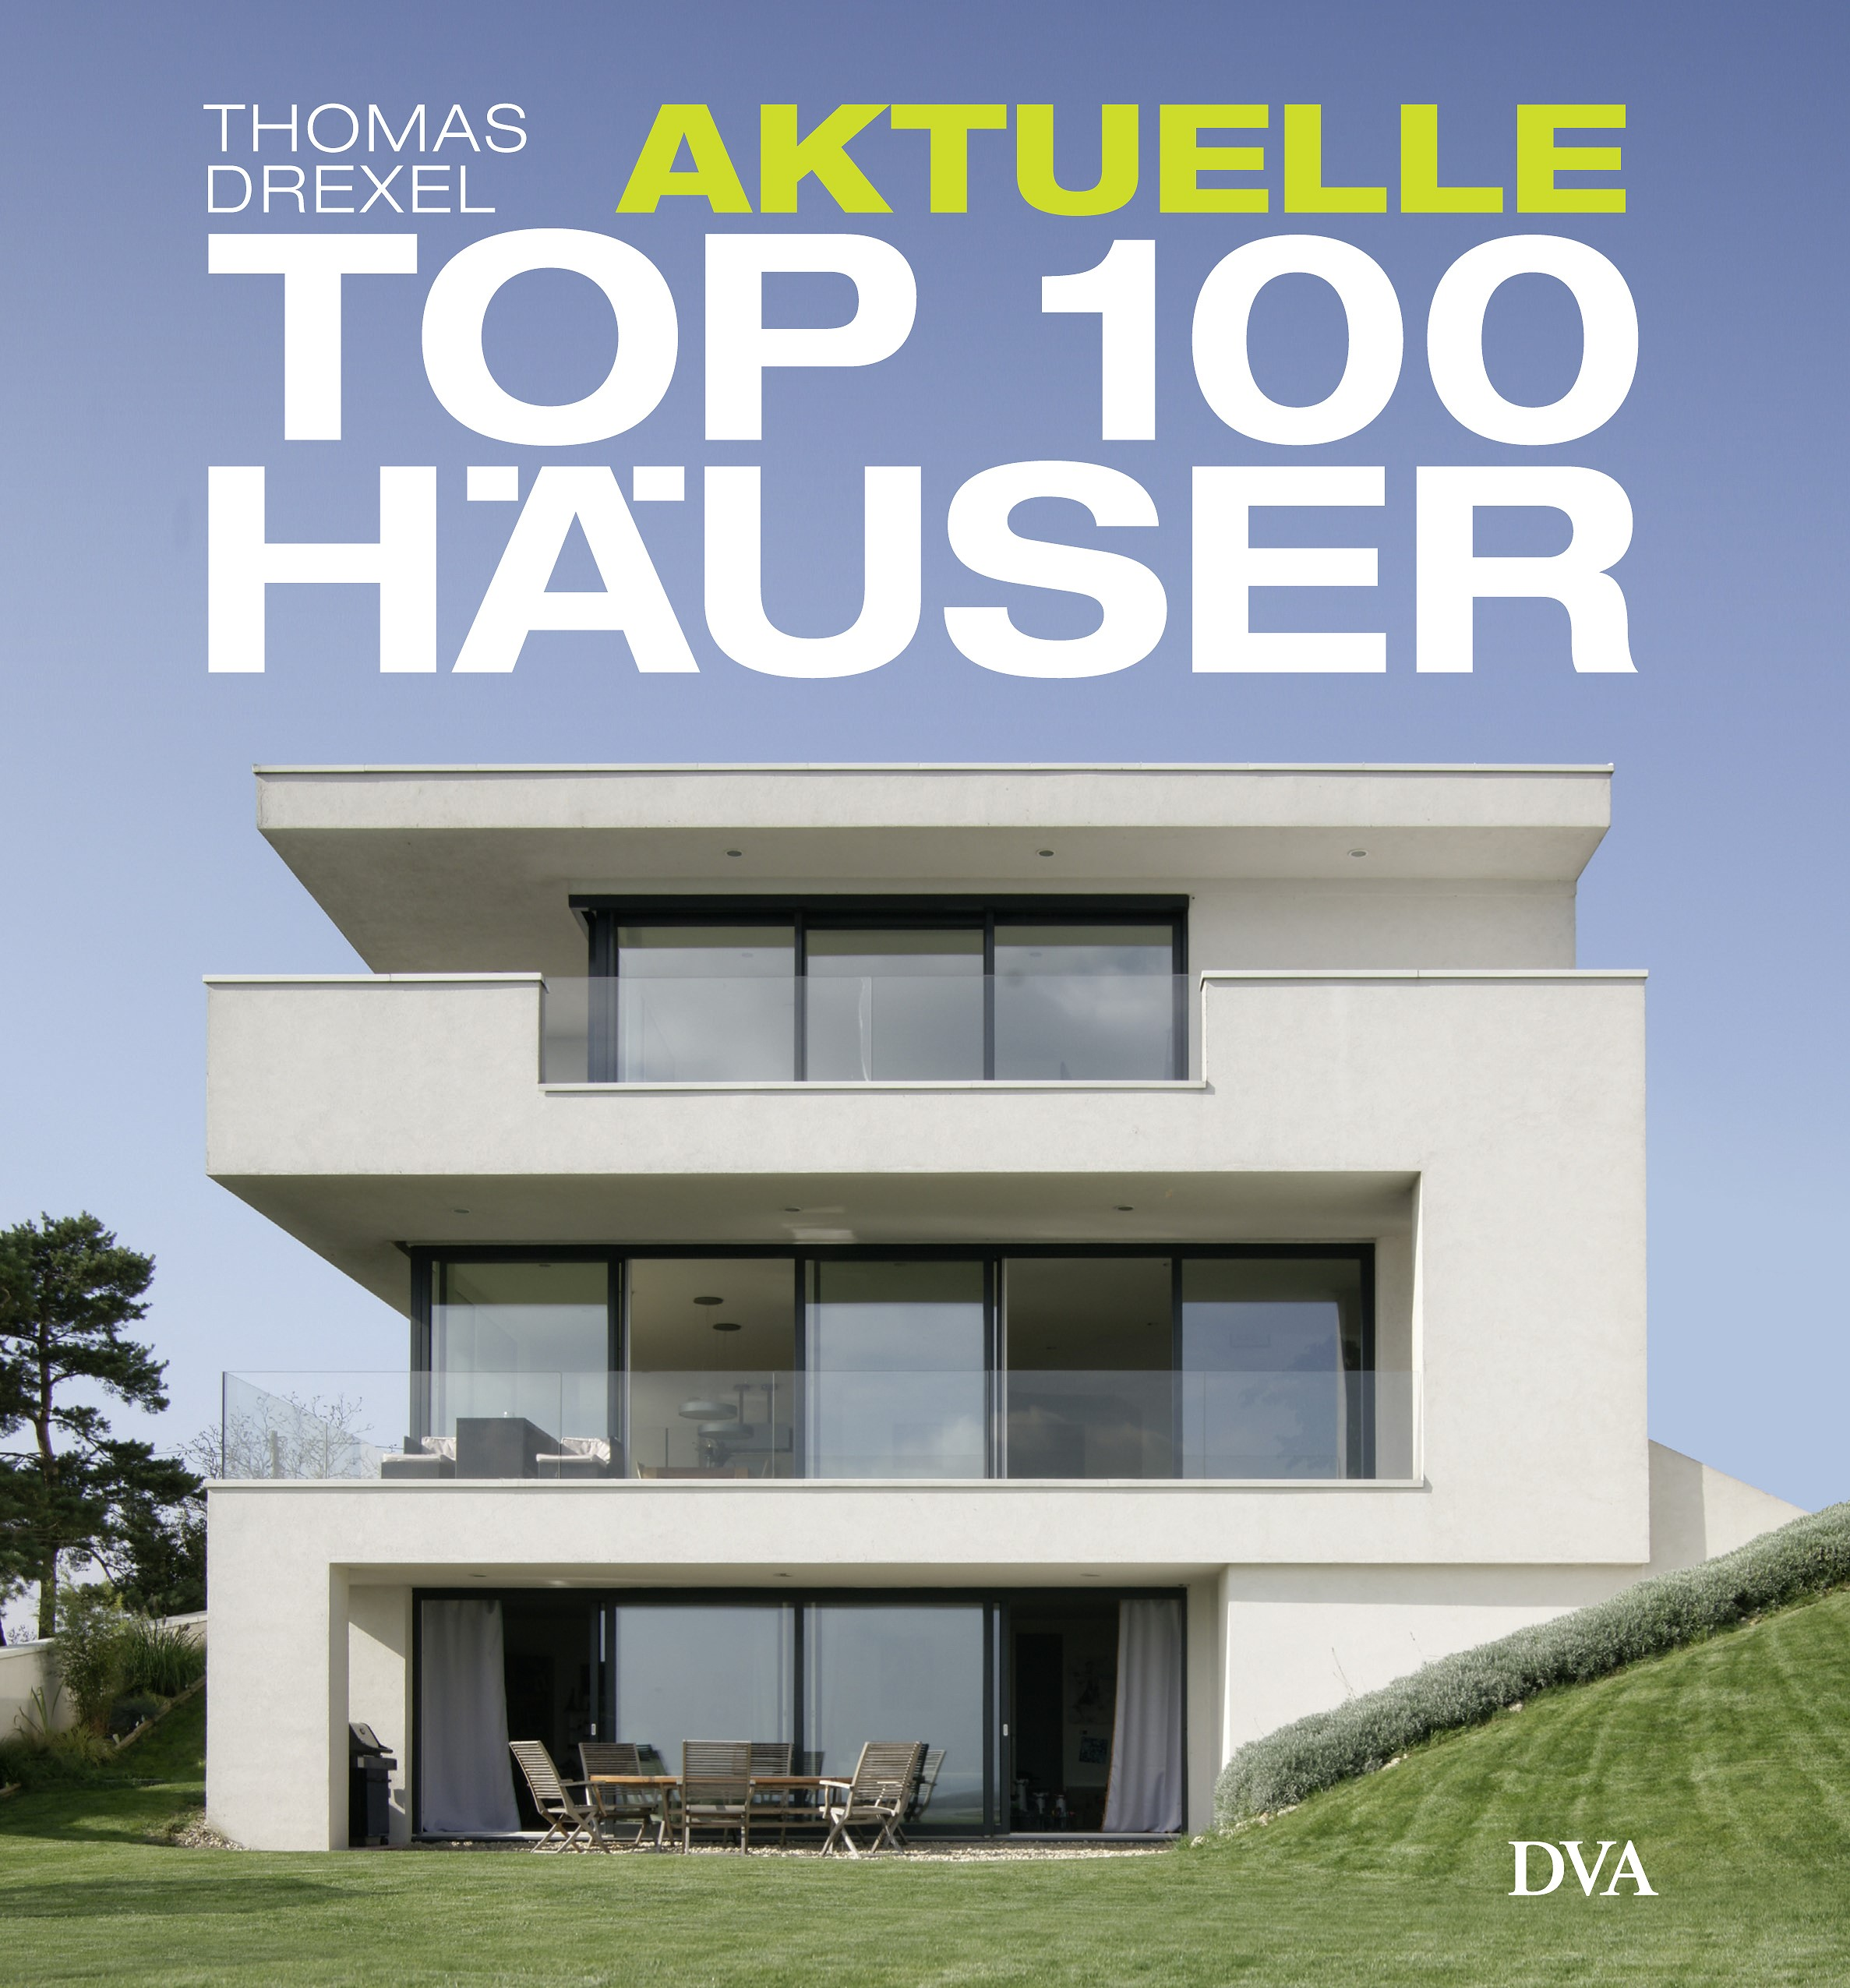 Aktuelle top 100 h user medienservice architektur und for Aktuelle architektur